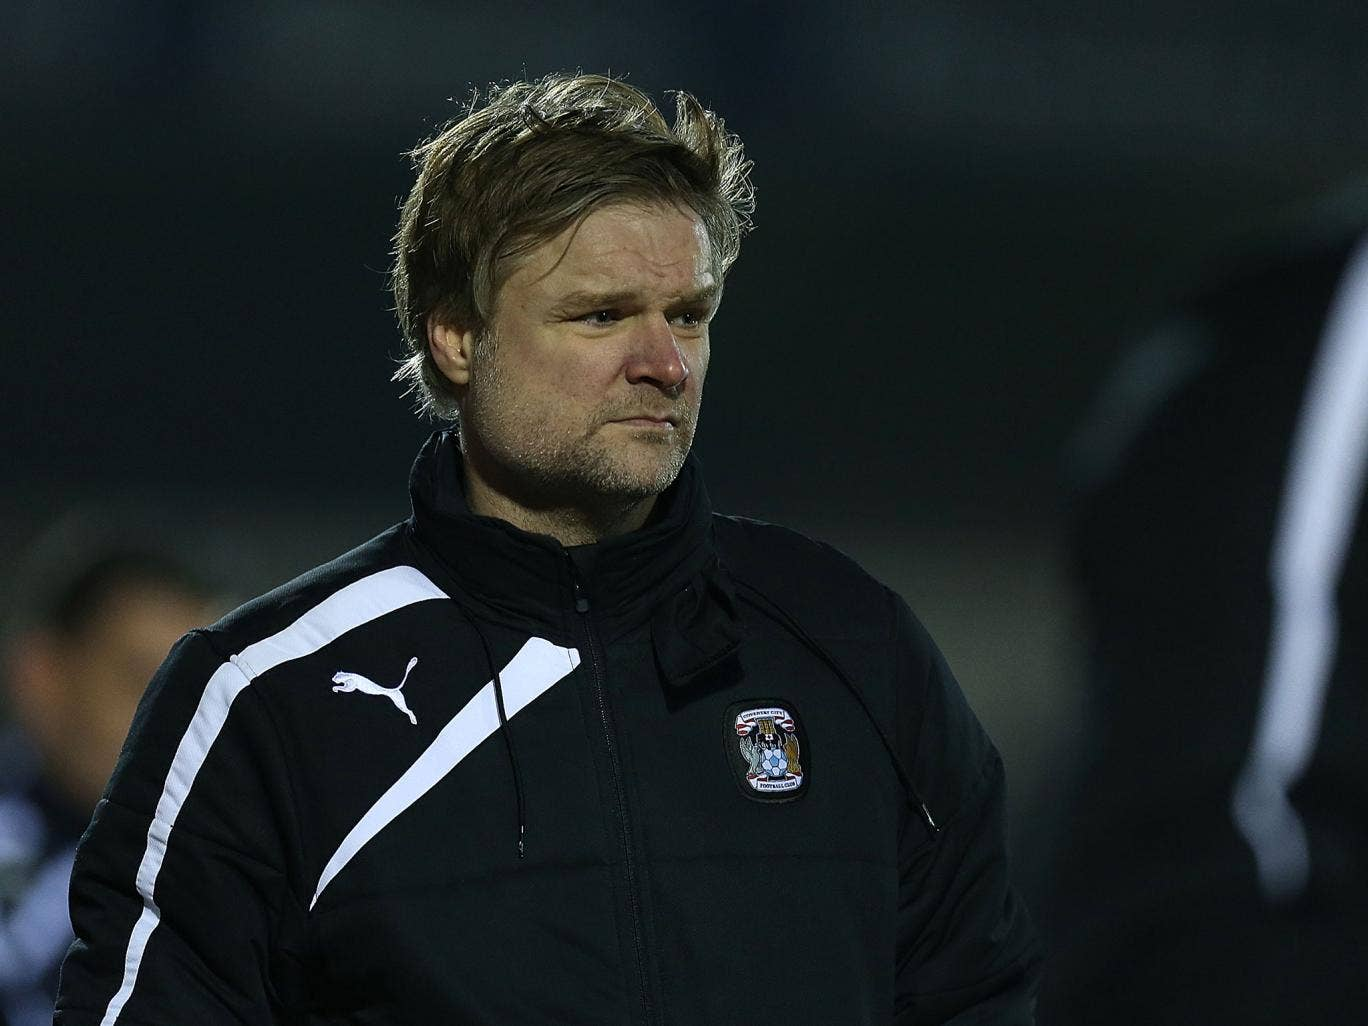 Manager Steven Pressley, who did well to keep Coventry up, hailed the decision as a 'huge and defining day for the club'